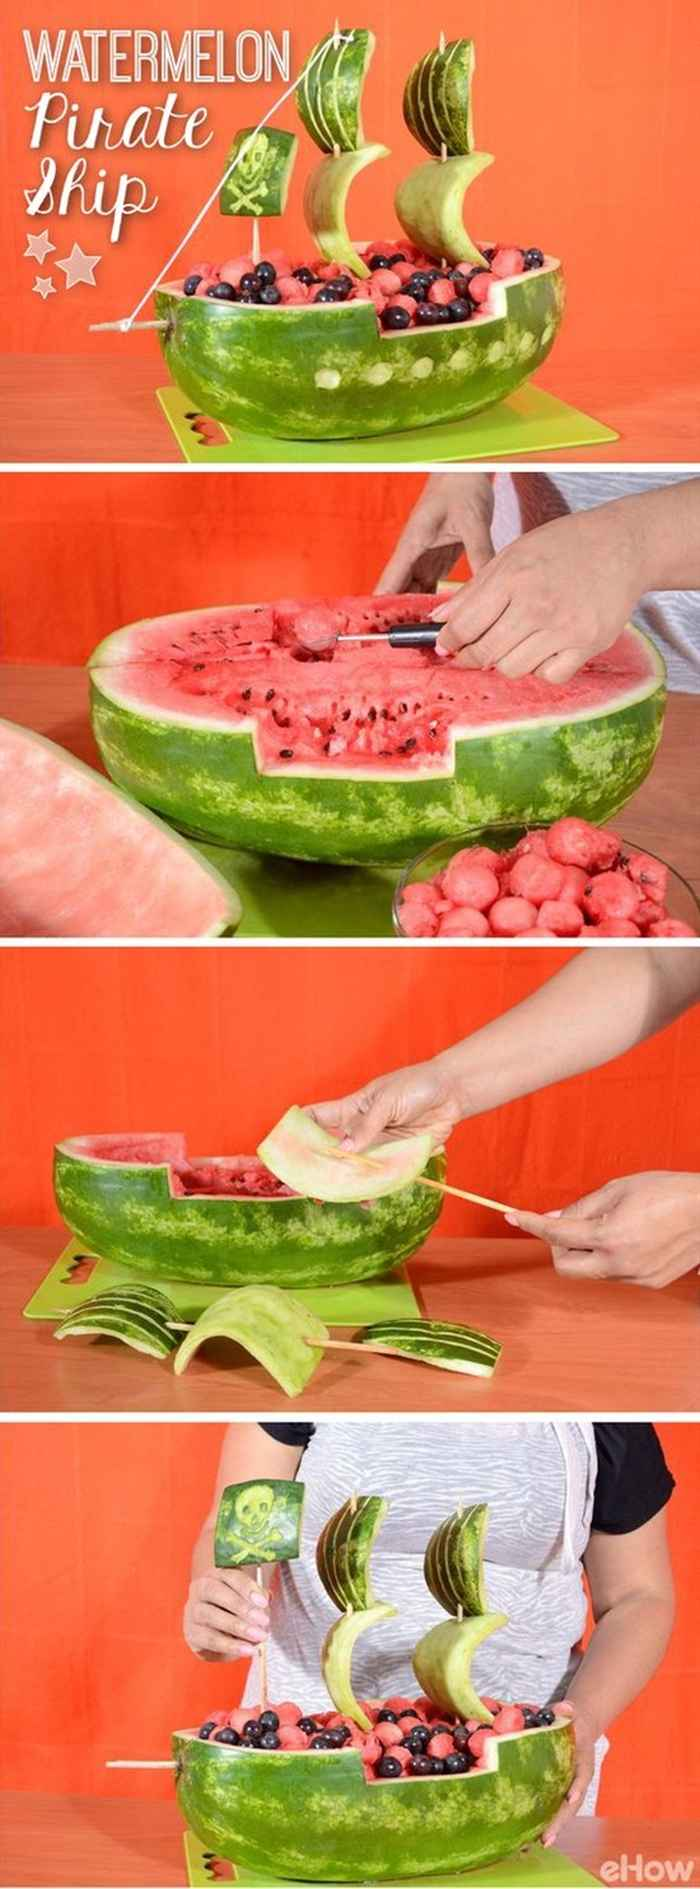 Watermelon Pirate Ship Carving Ideas